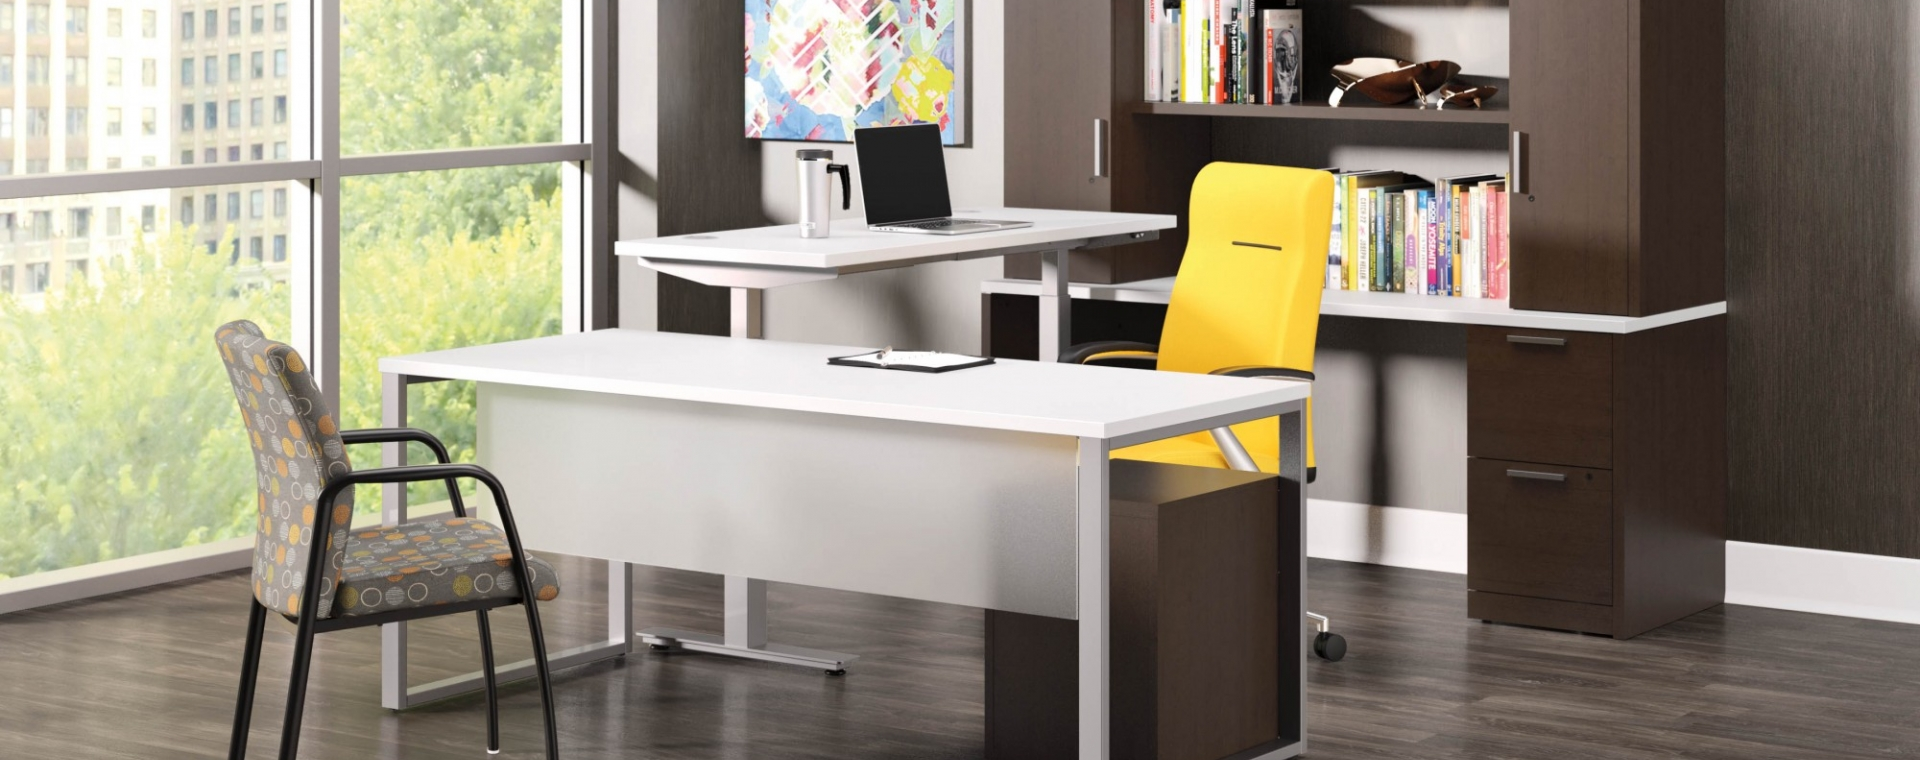 Large Office E With One Desk A Yellow Wheeling Chair Stationary Tan